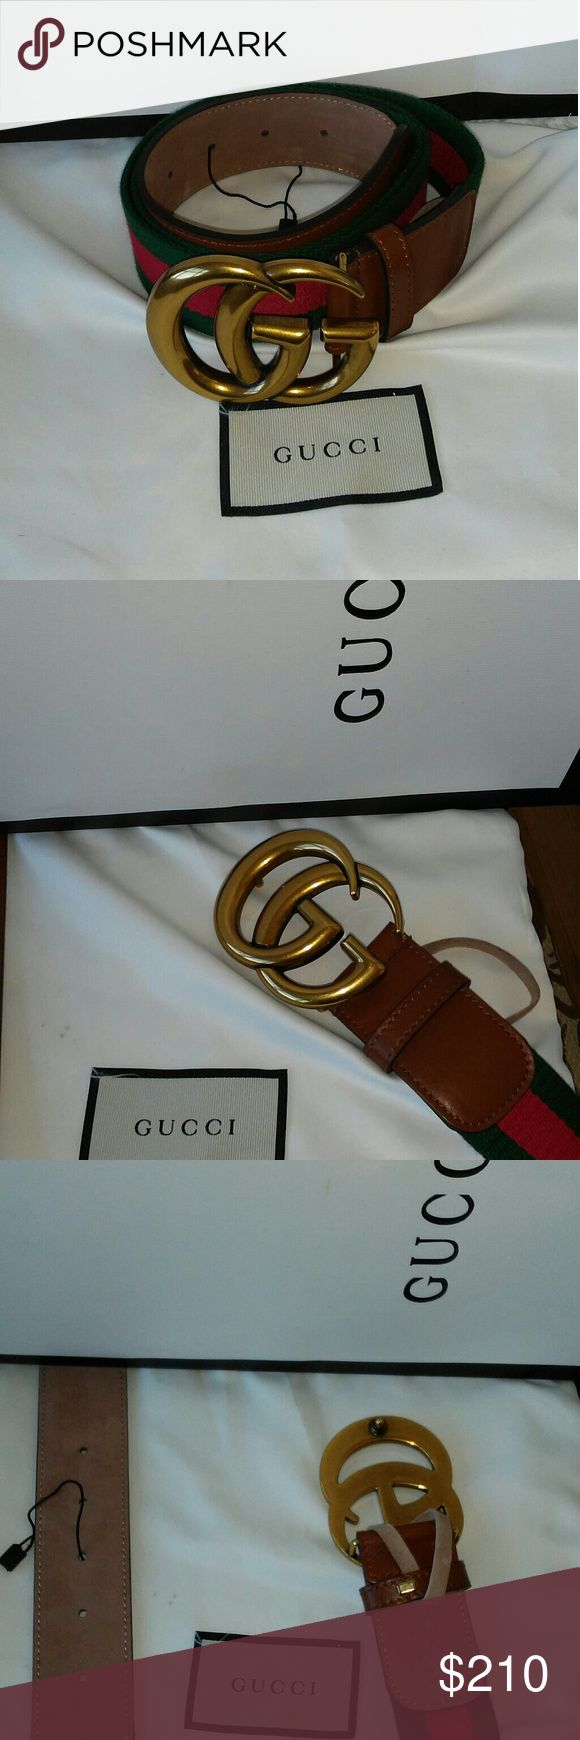 Brand New Gucci belt Brand new brown Gucci leather belt with green and red stripes Gucci Accessories Belts